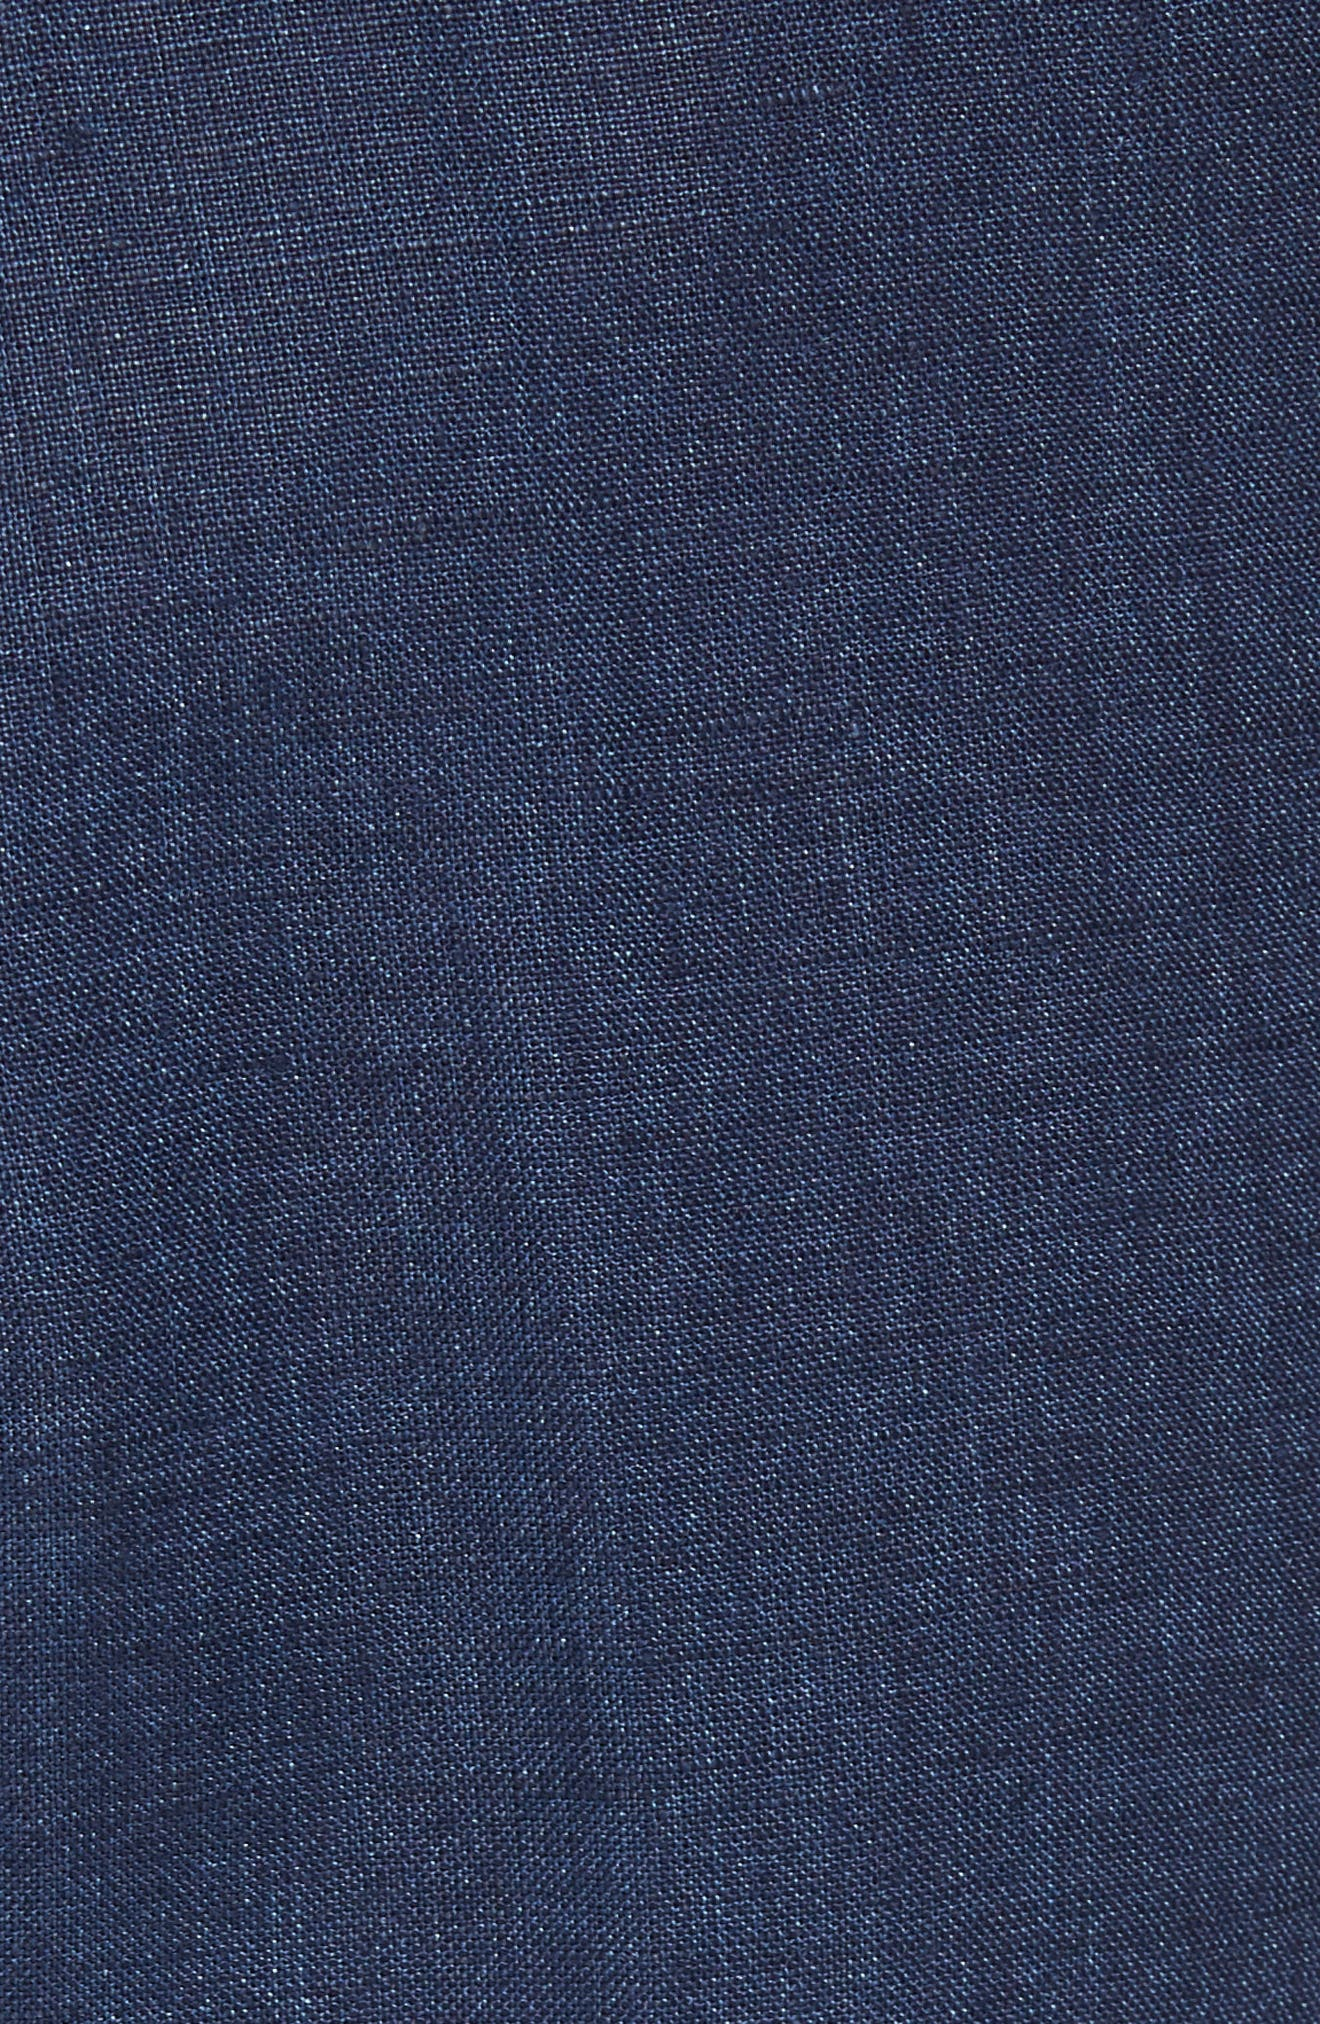 Andrew AIM Flat Front Linen Trousers,                             Alternate thumbnail 5, color,                             Navy